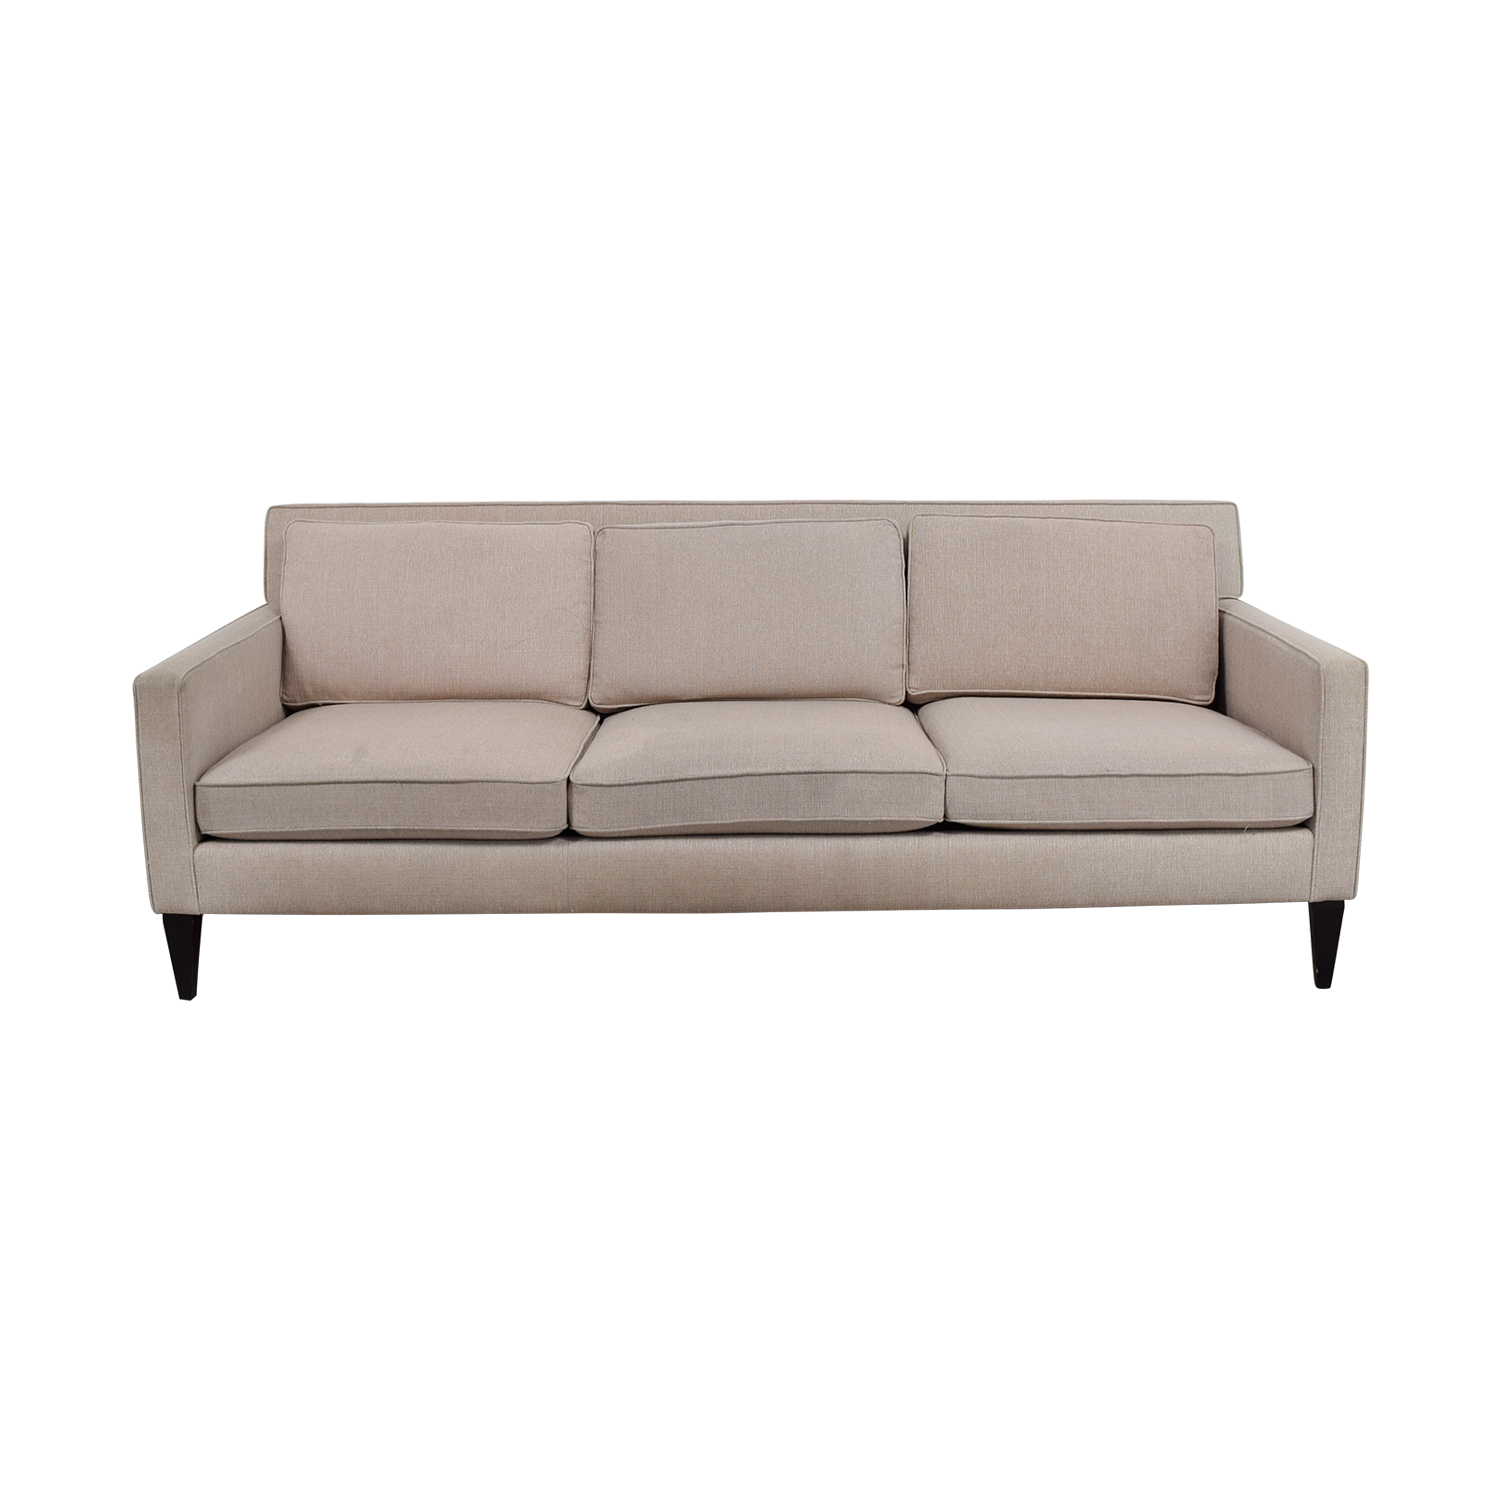 crate and barrel sofa cushion replacement leather corner furniture village three sofas slipcovers home